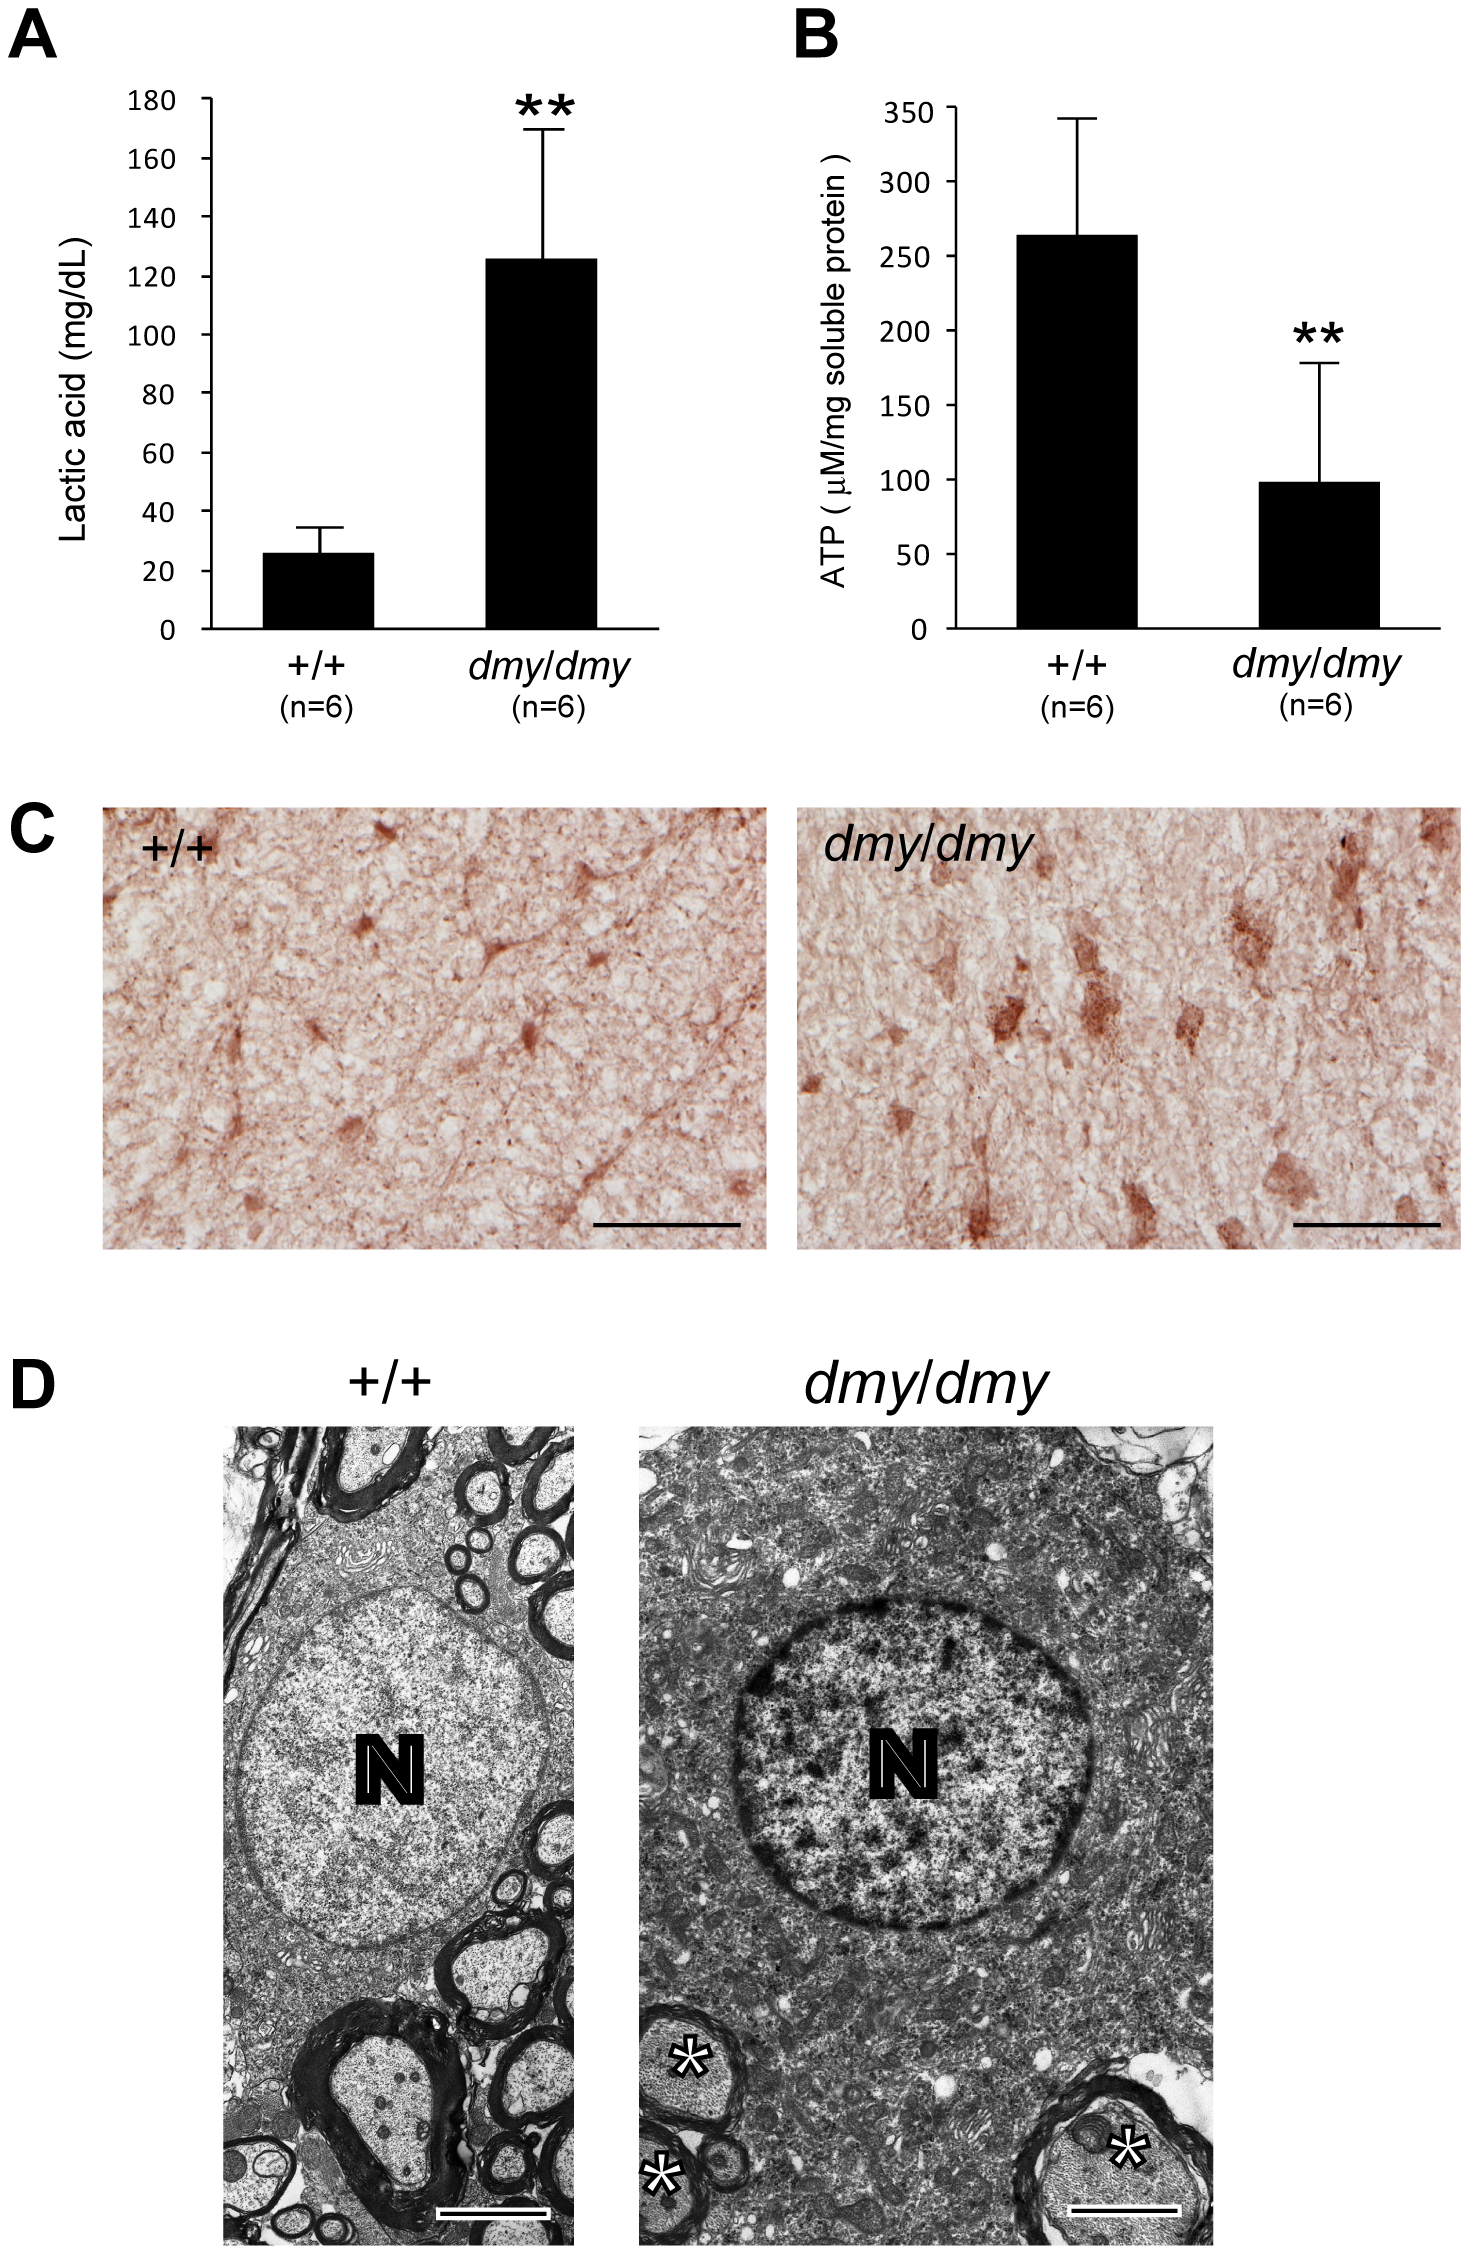 Biochemical and morphological abnormalities in the mitochondria of <i>dmy/dmy</i> mutant rats.